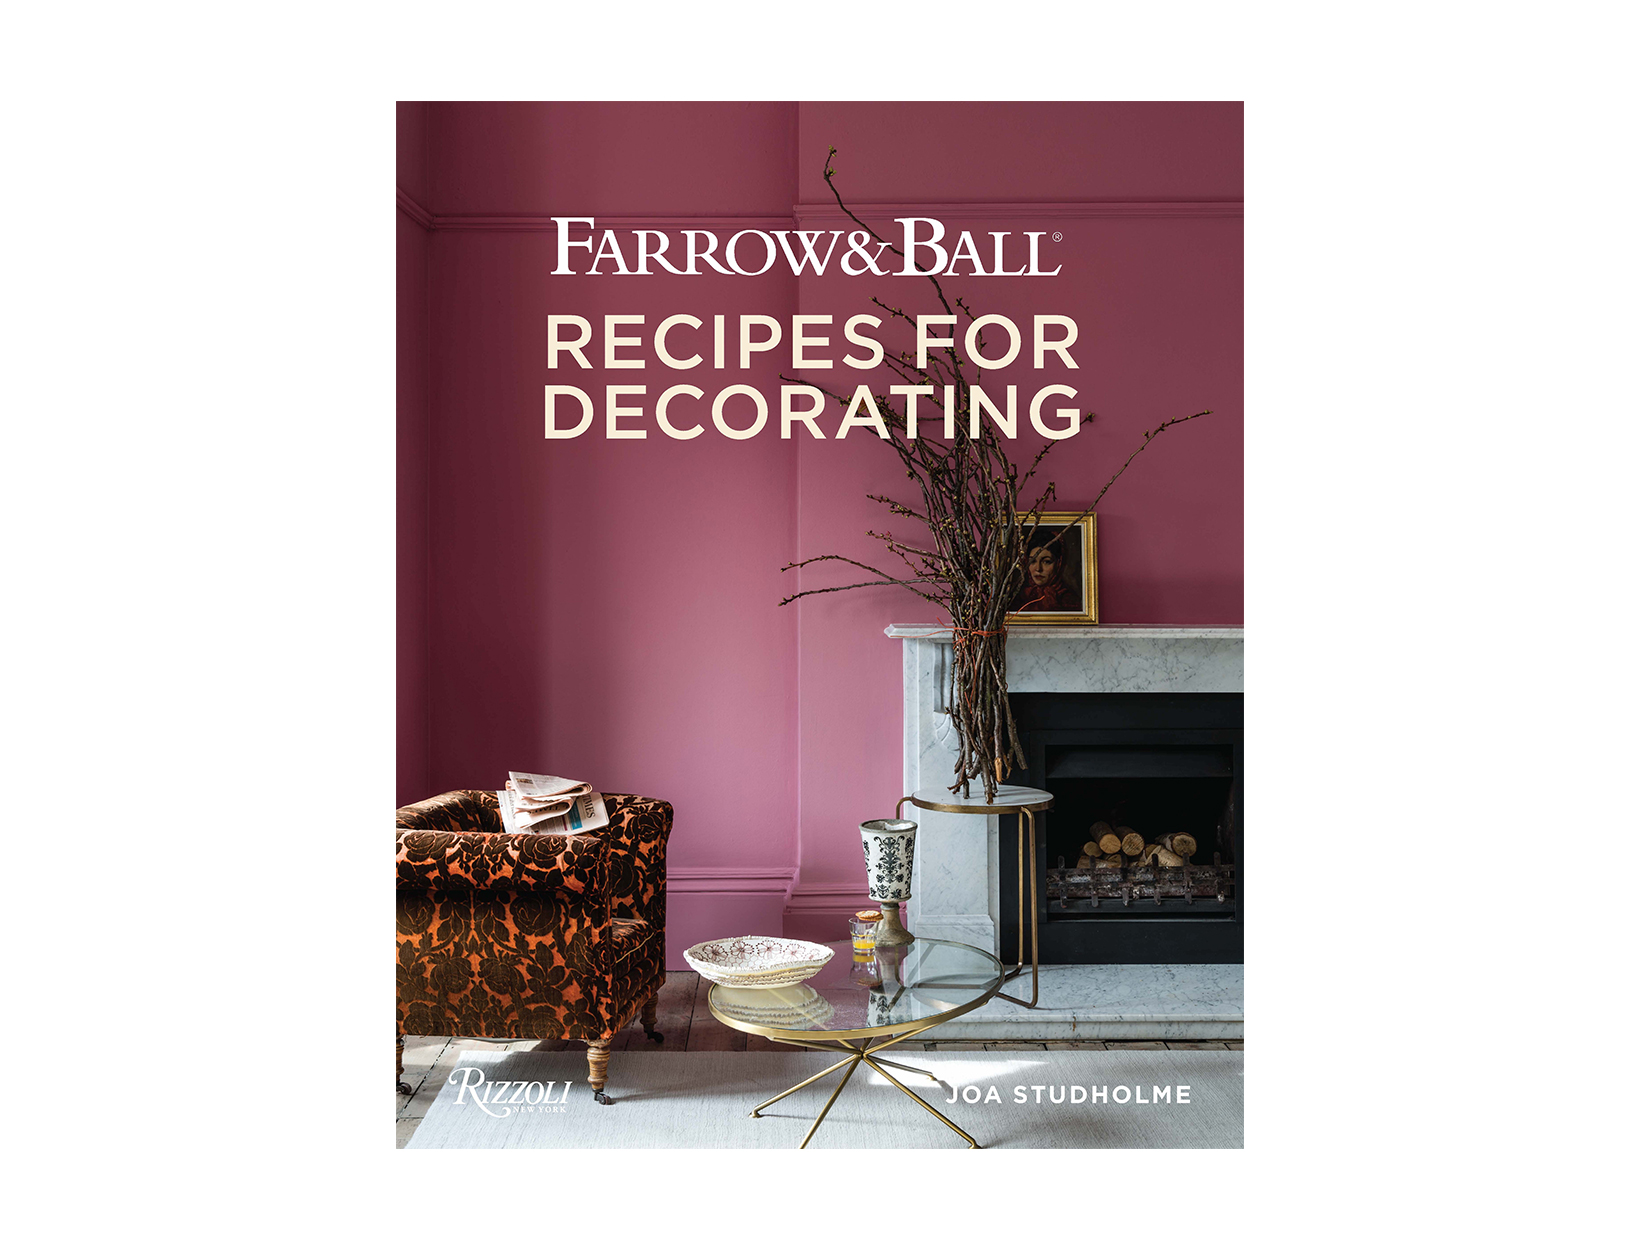 <em>Farrow & Ball Recipes for Decorating</em> by Joe Studholme